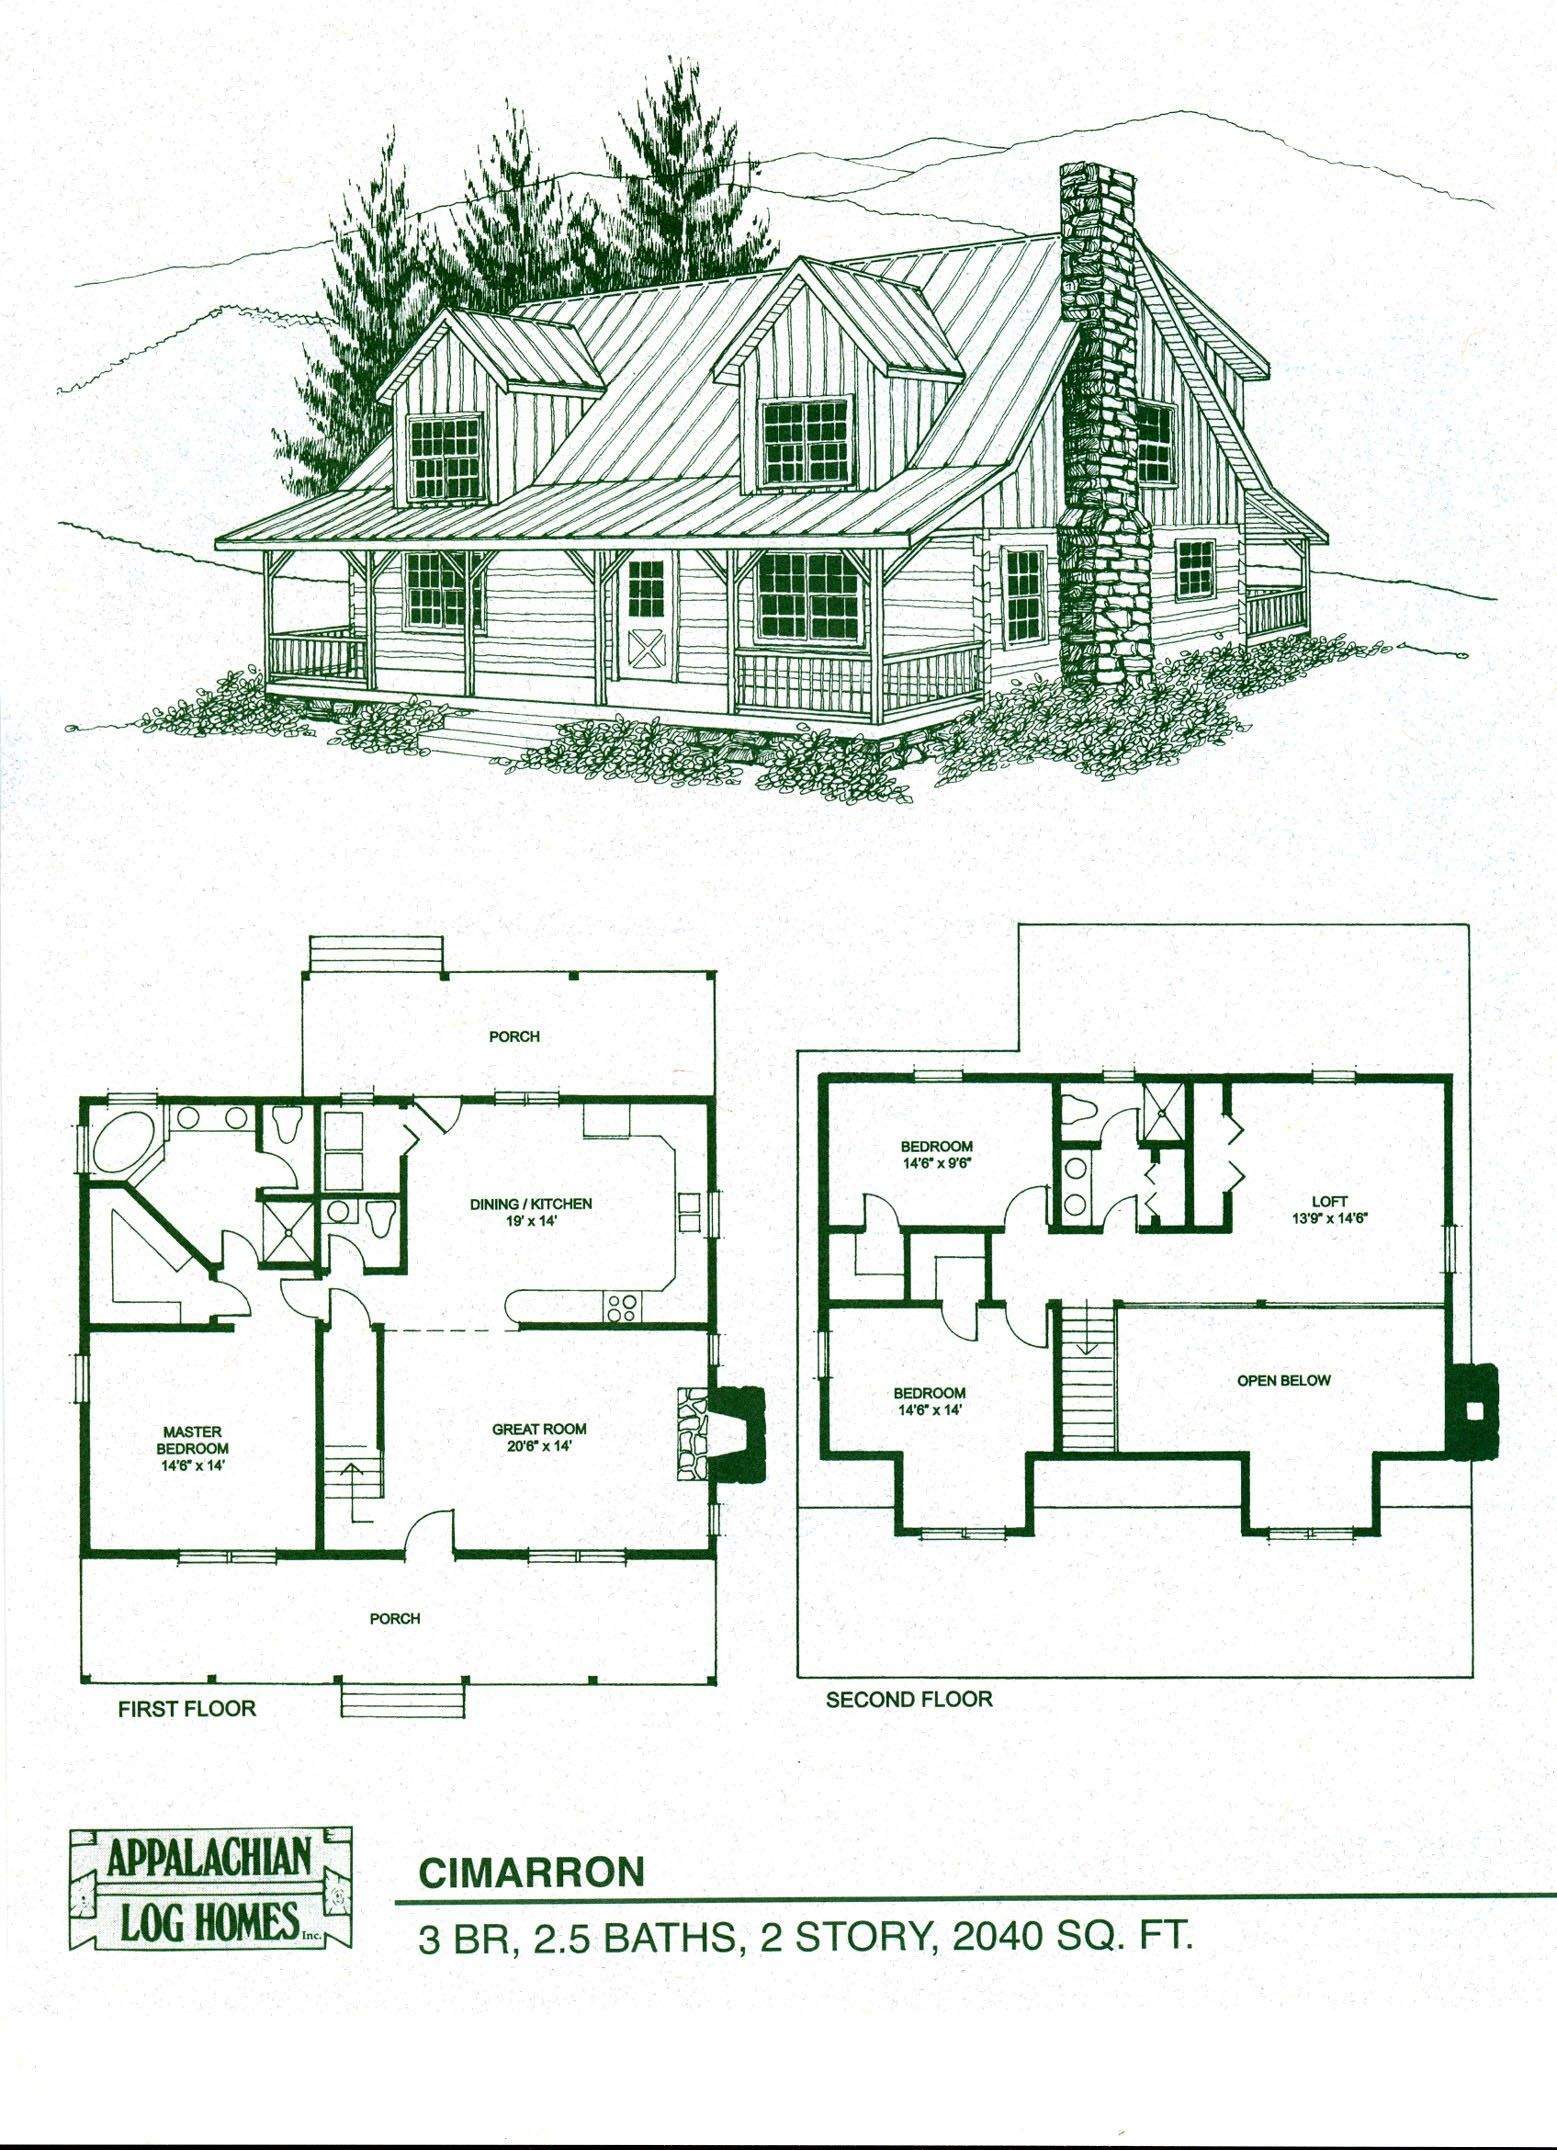 log home floor plans log cabin kits appalachian log homes rh pinterest com